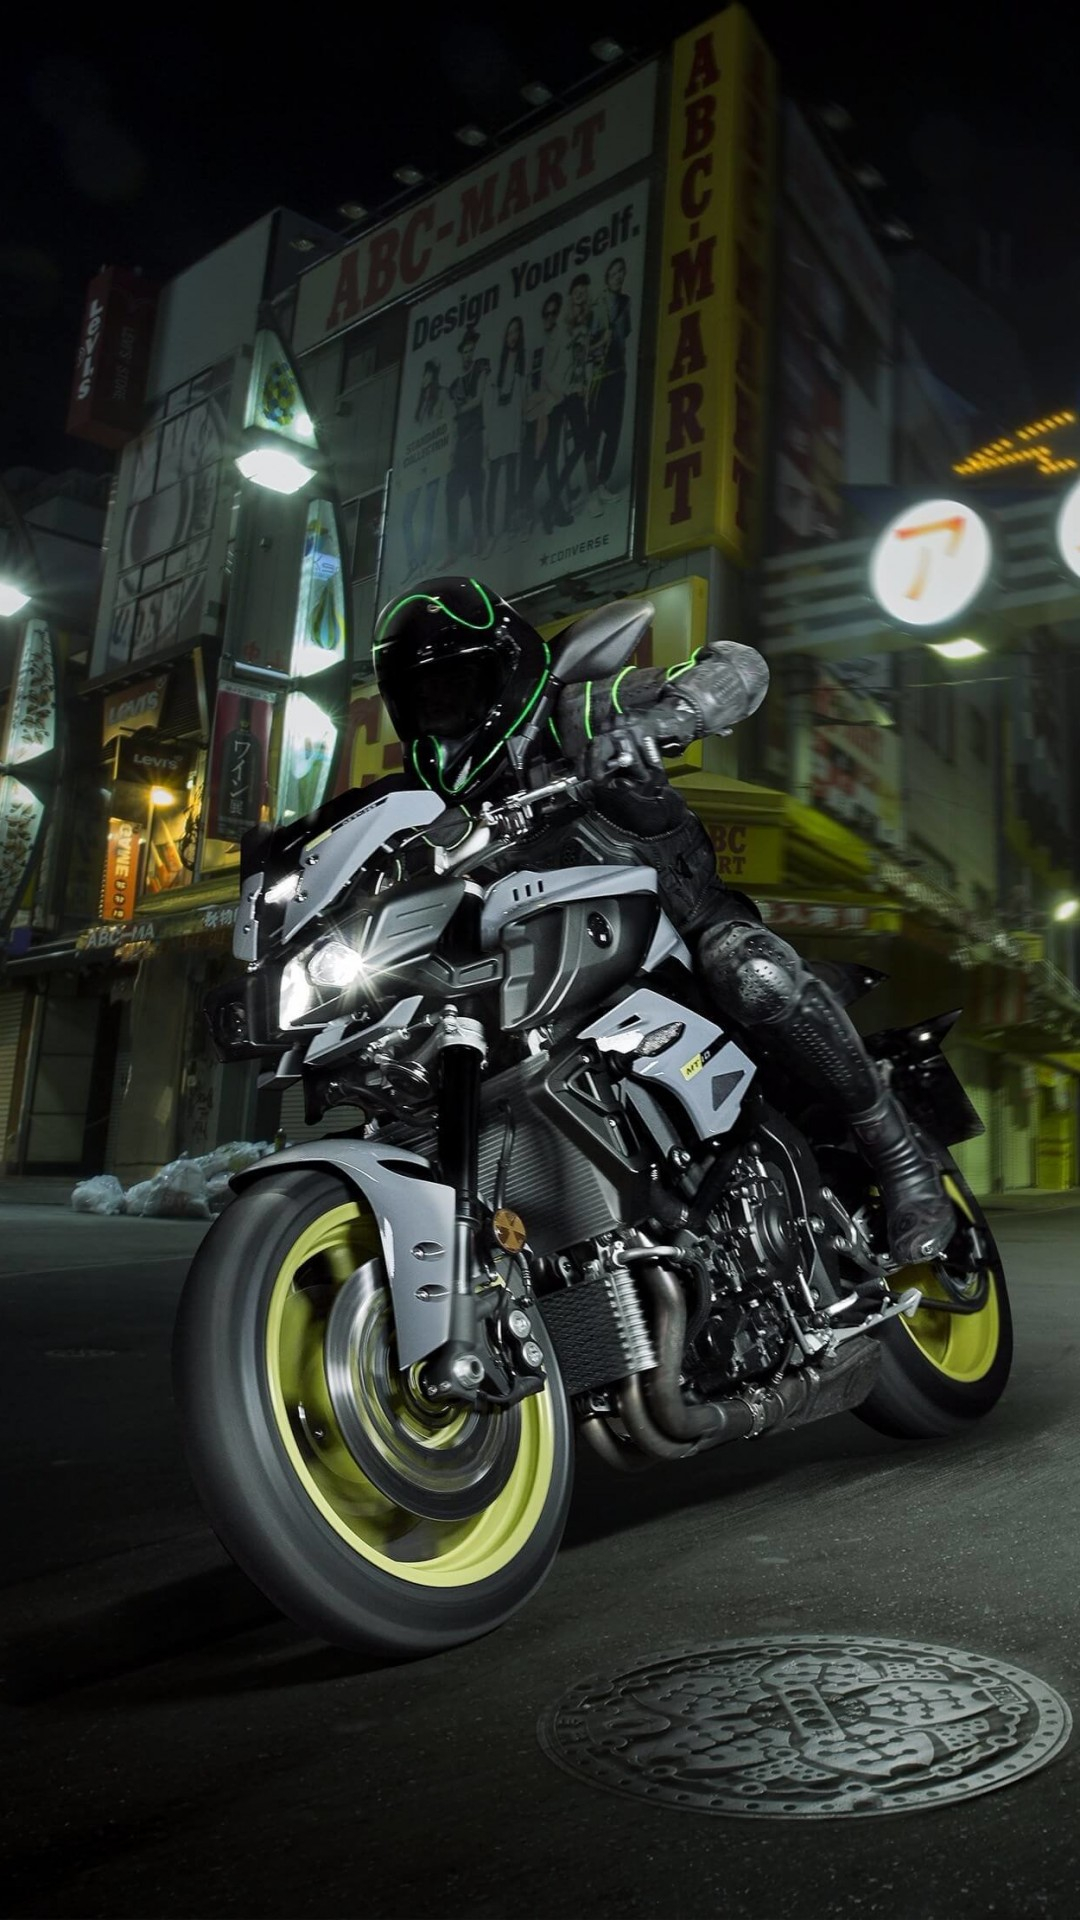 Yamaha MT-10 Superbike Wallpaper for SONY Xperia Z2